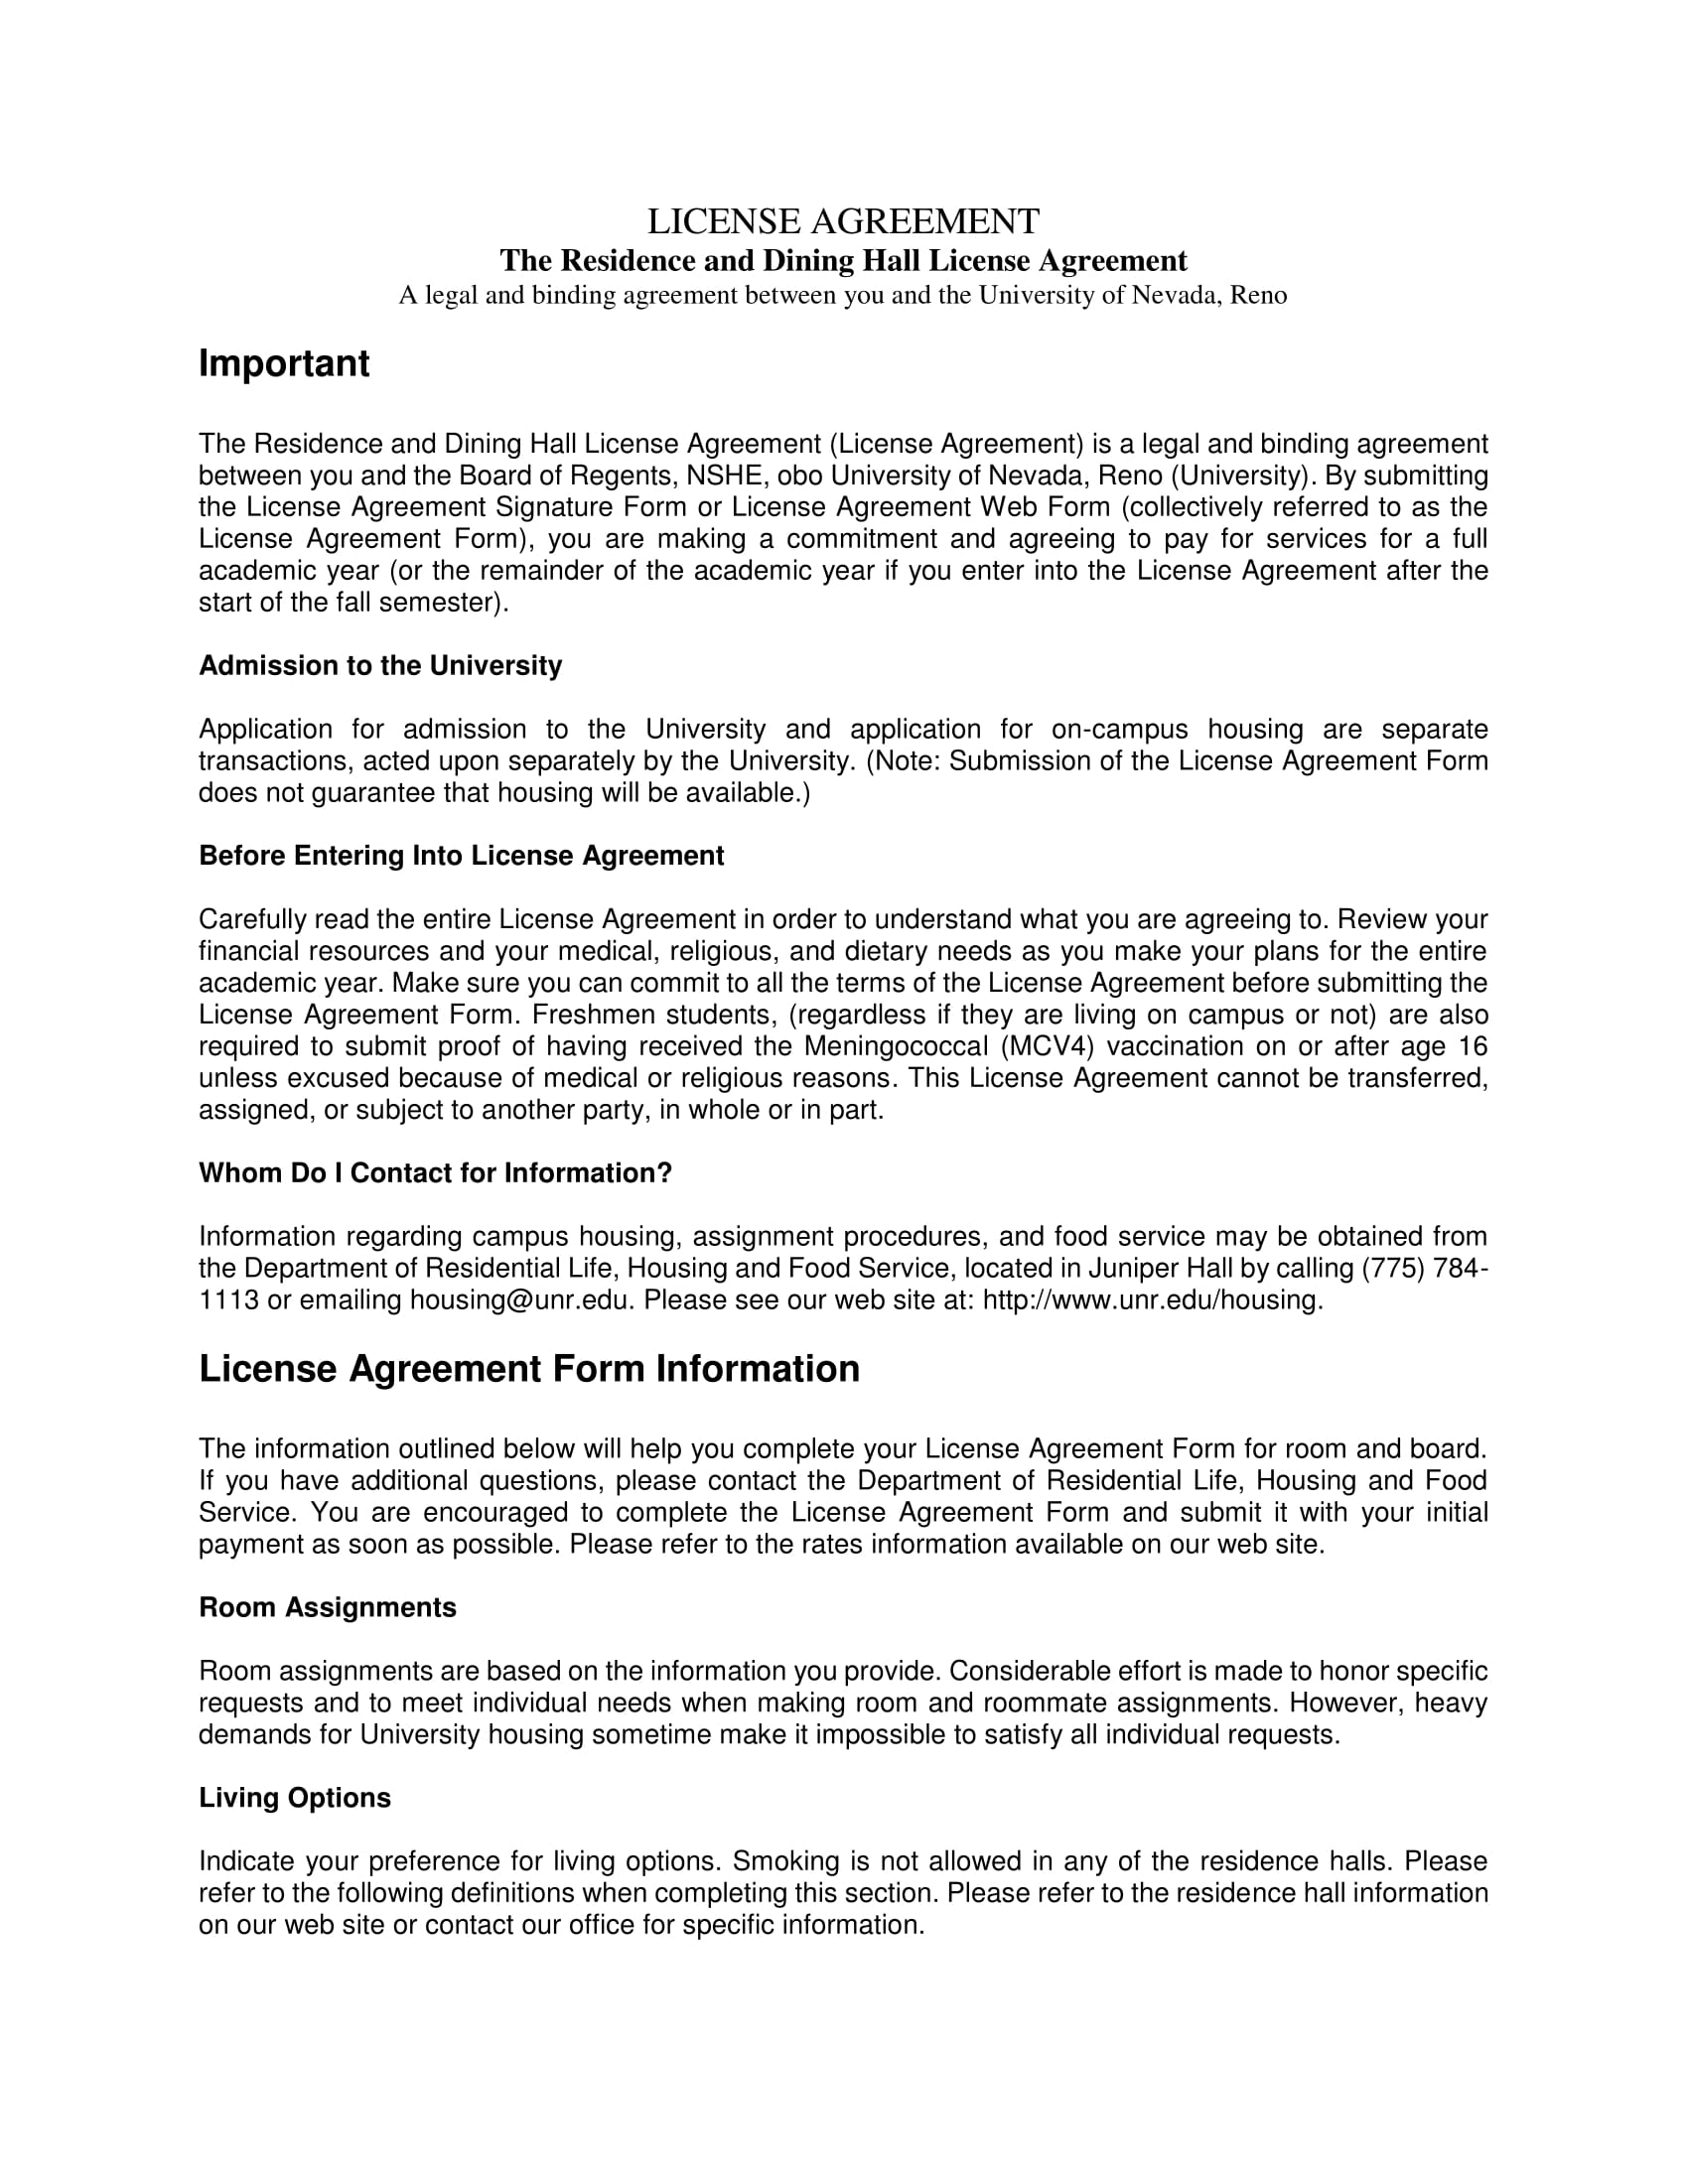 4+ License Agreement Long Forms - PDF